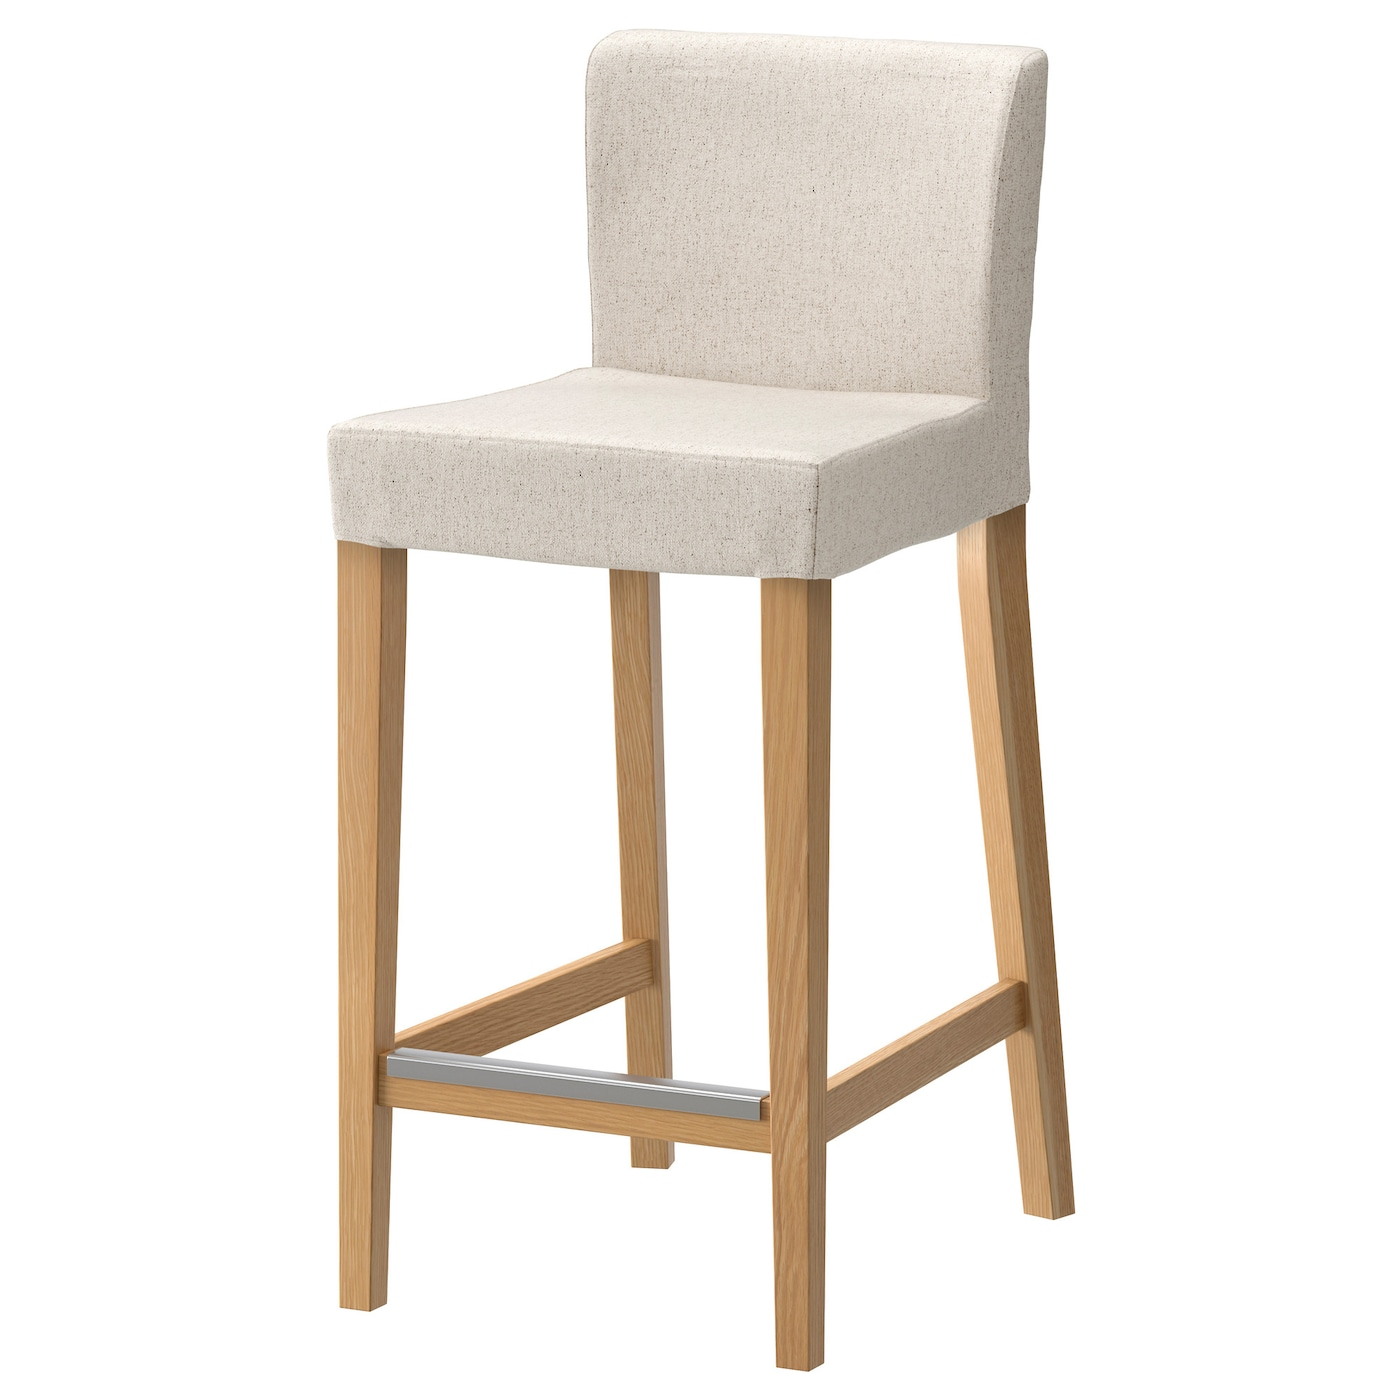 henriksdal tabouret de bar dossier ch ne linneryd naturel 74 cm ikea. Black Bedroom Furniture Sets. Home Design Ideas